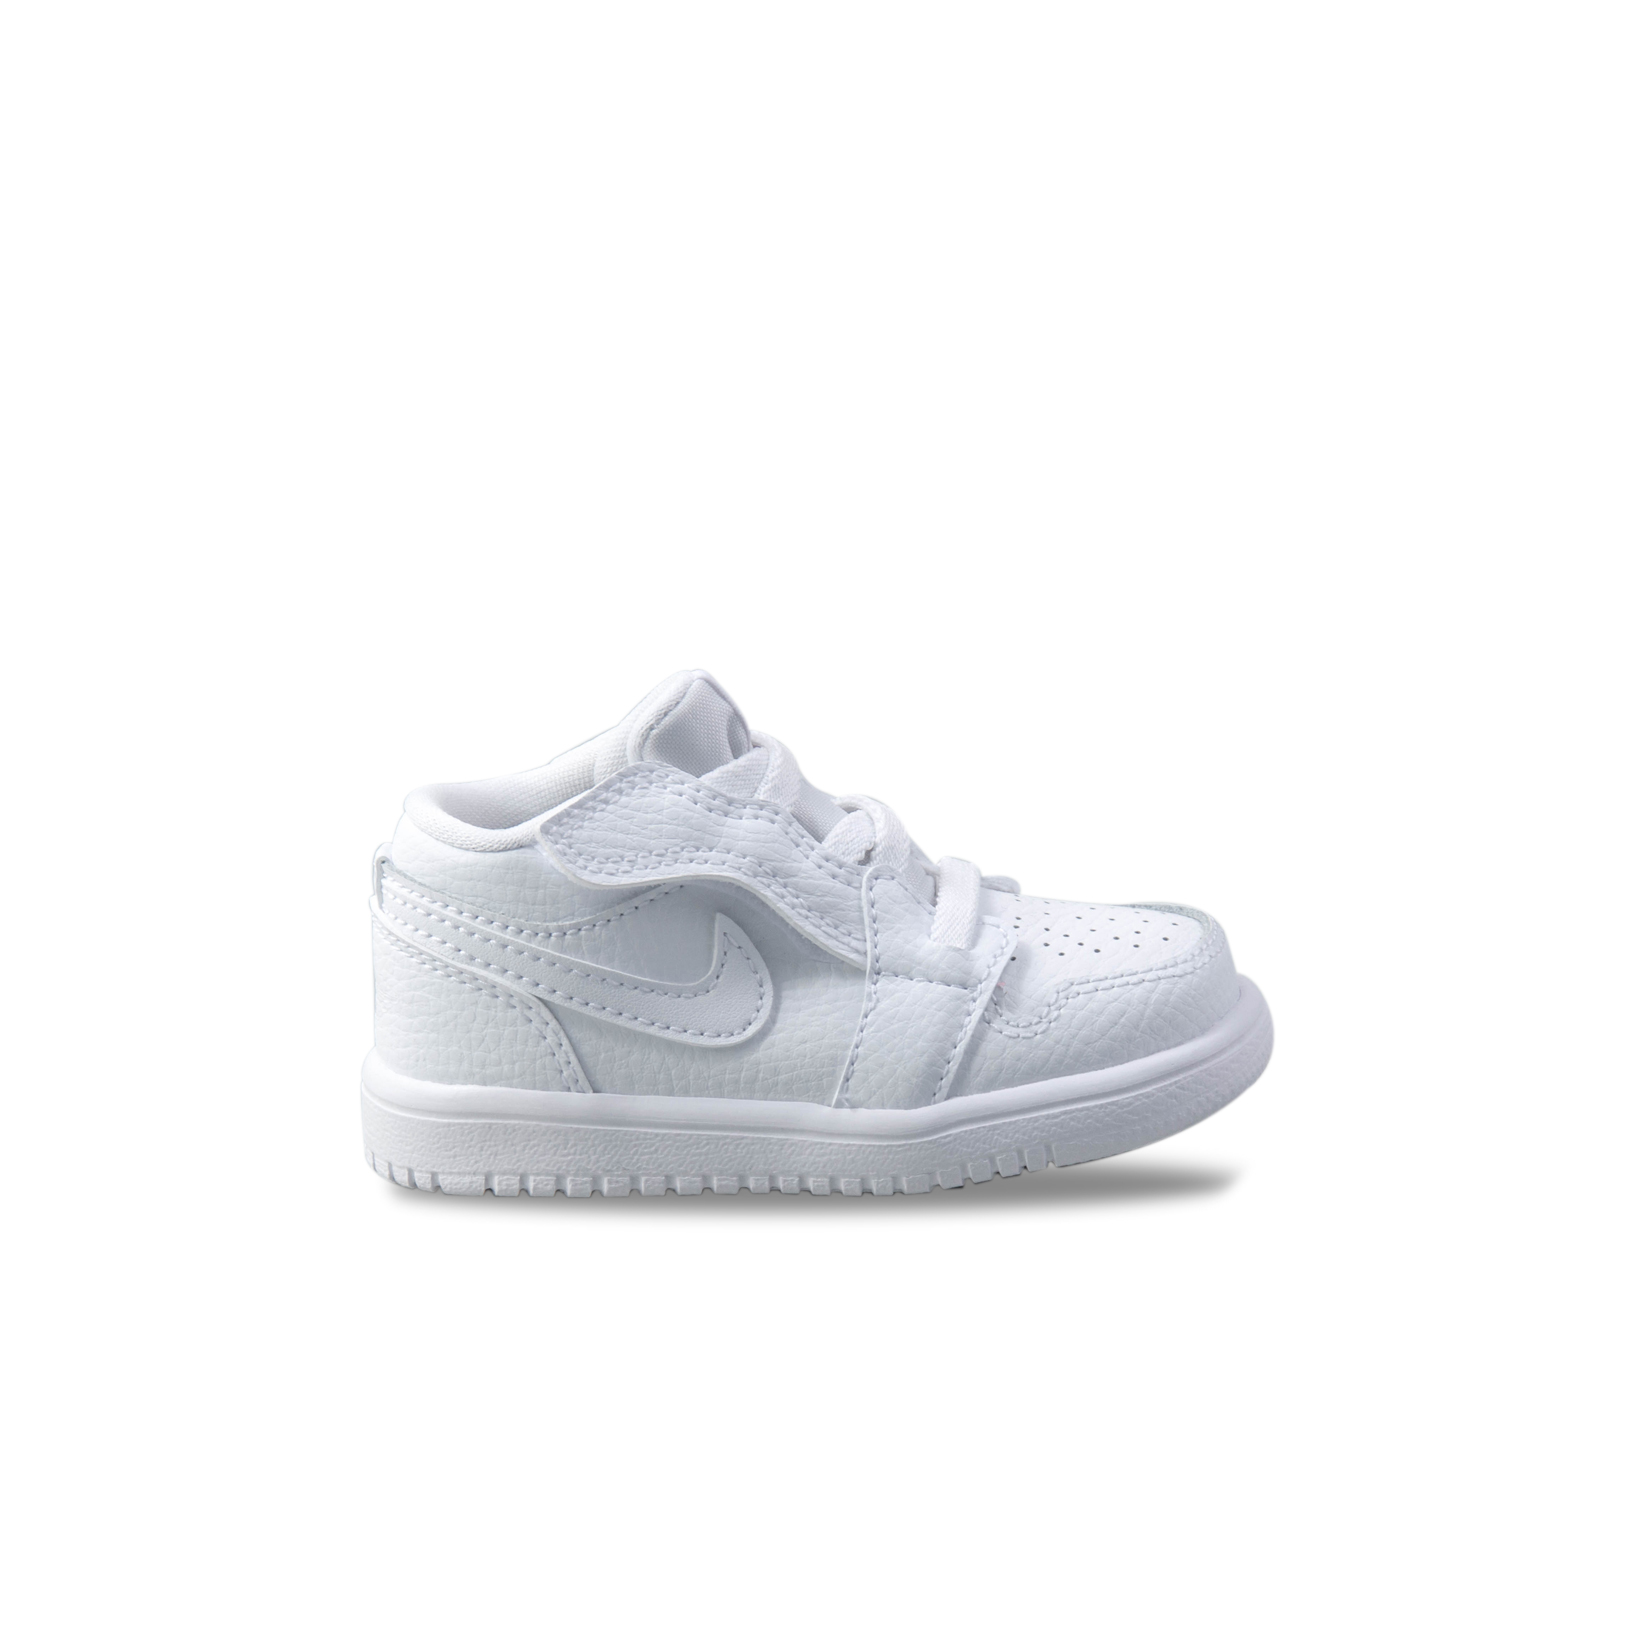 premium selection 45ca9 a4564 Baby's Shoes Jordan 1 Low White | All-Sports.gr